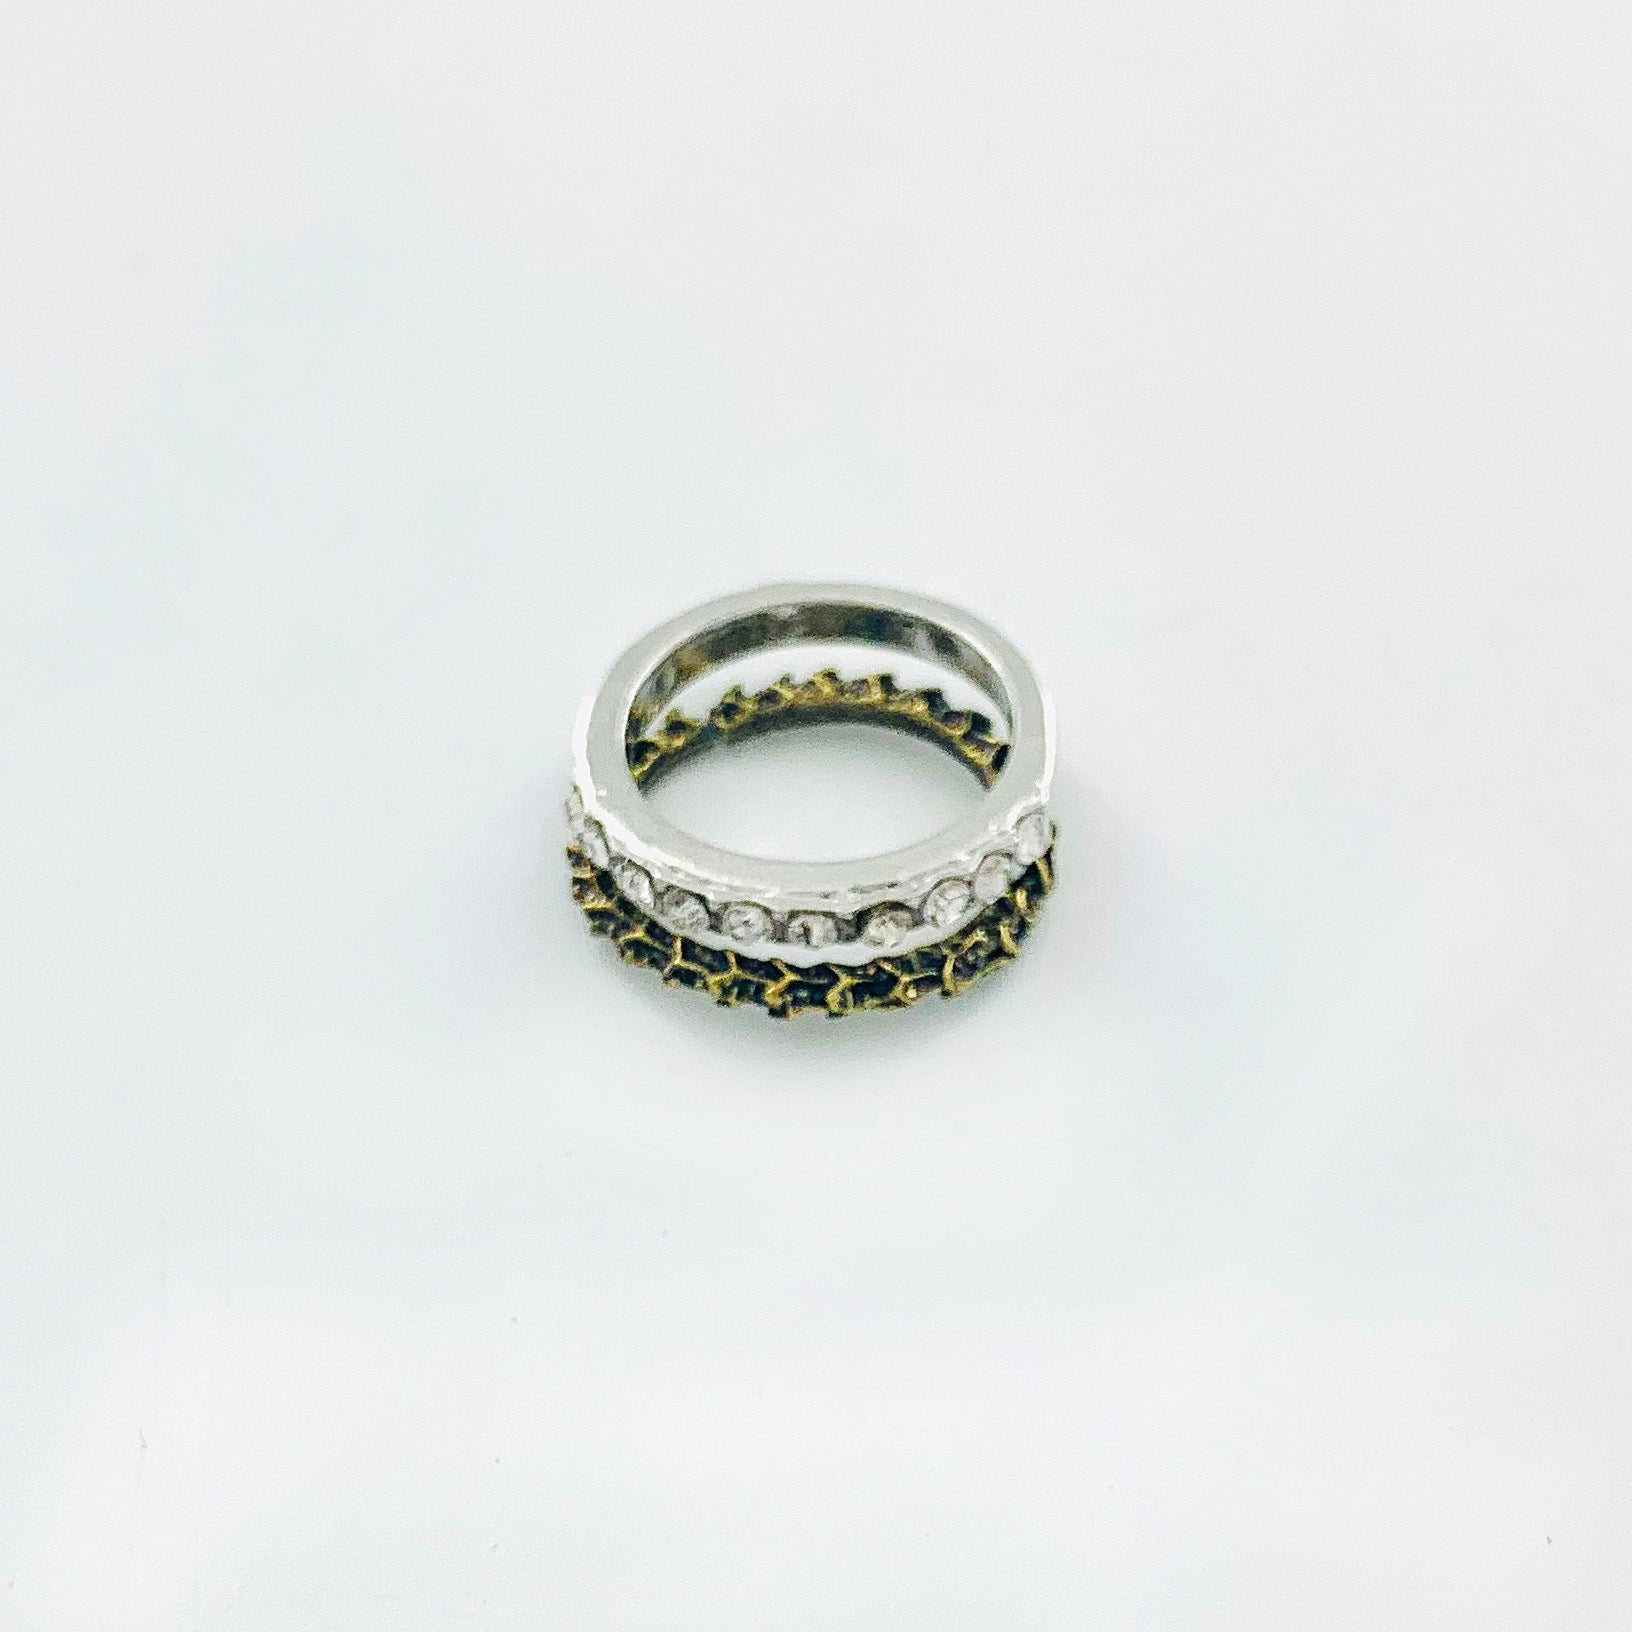 Silver ring with diamante with rustic gold ring